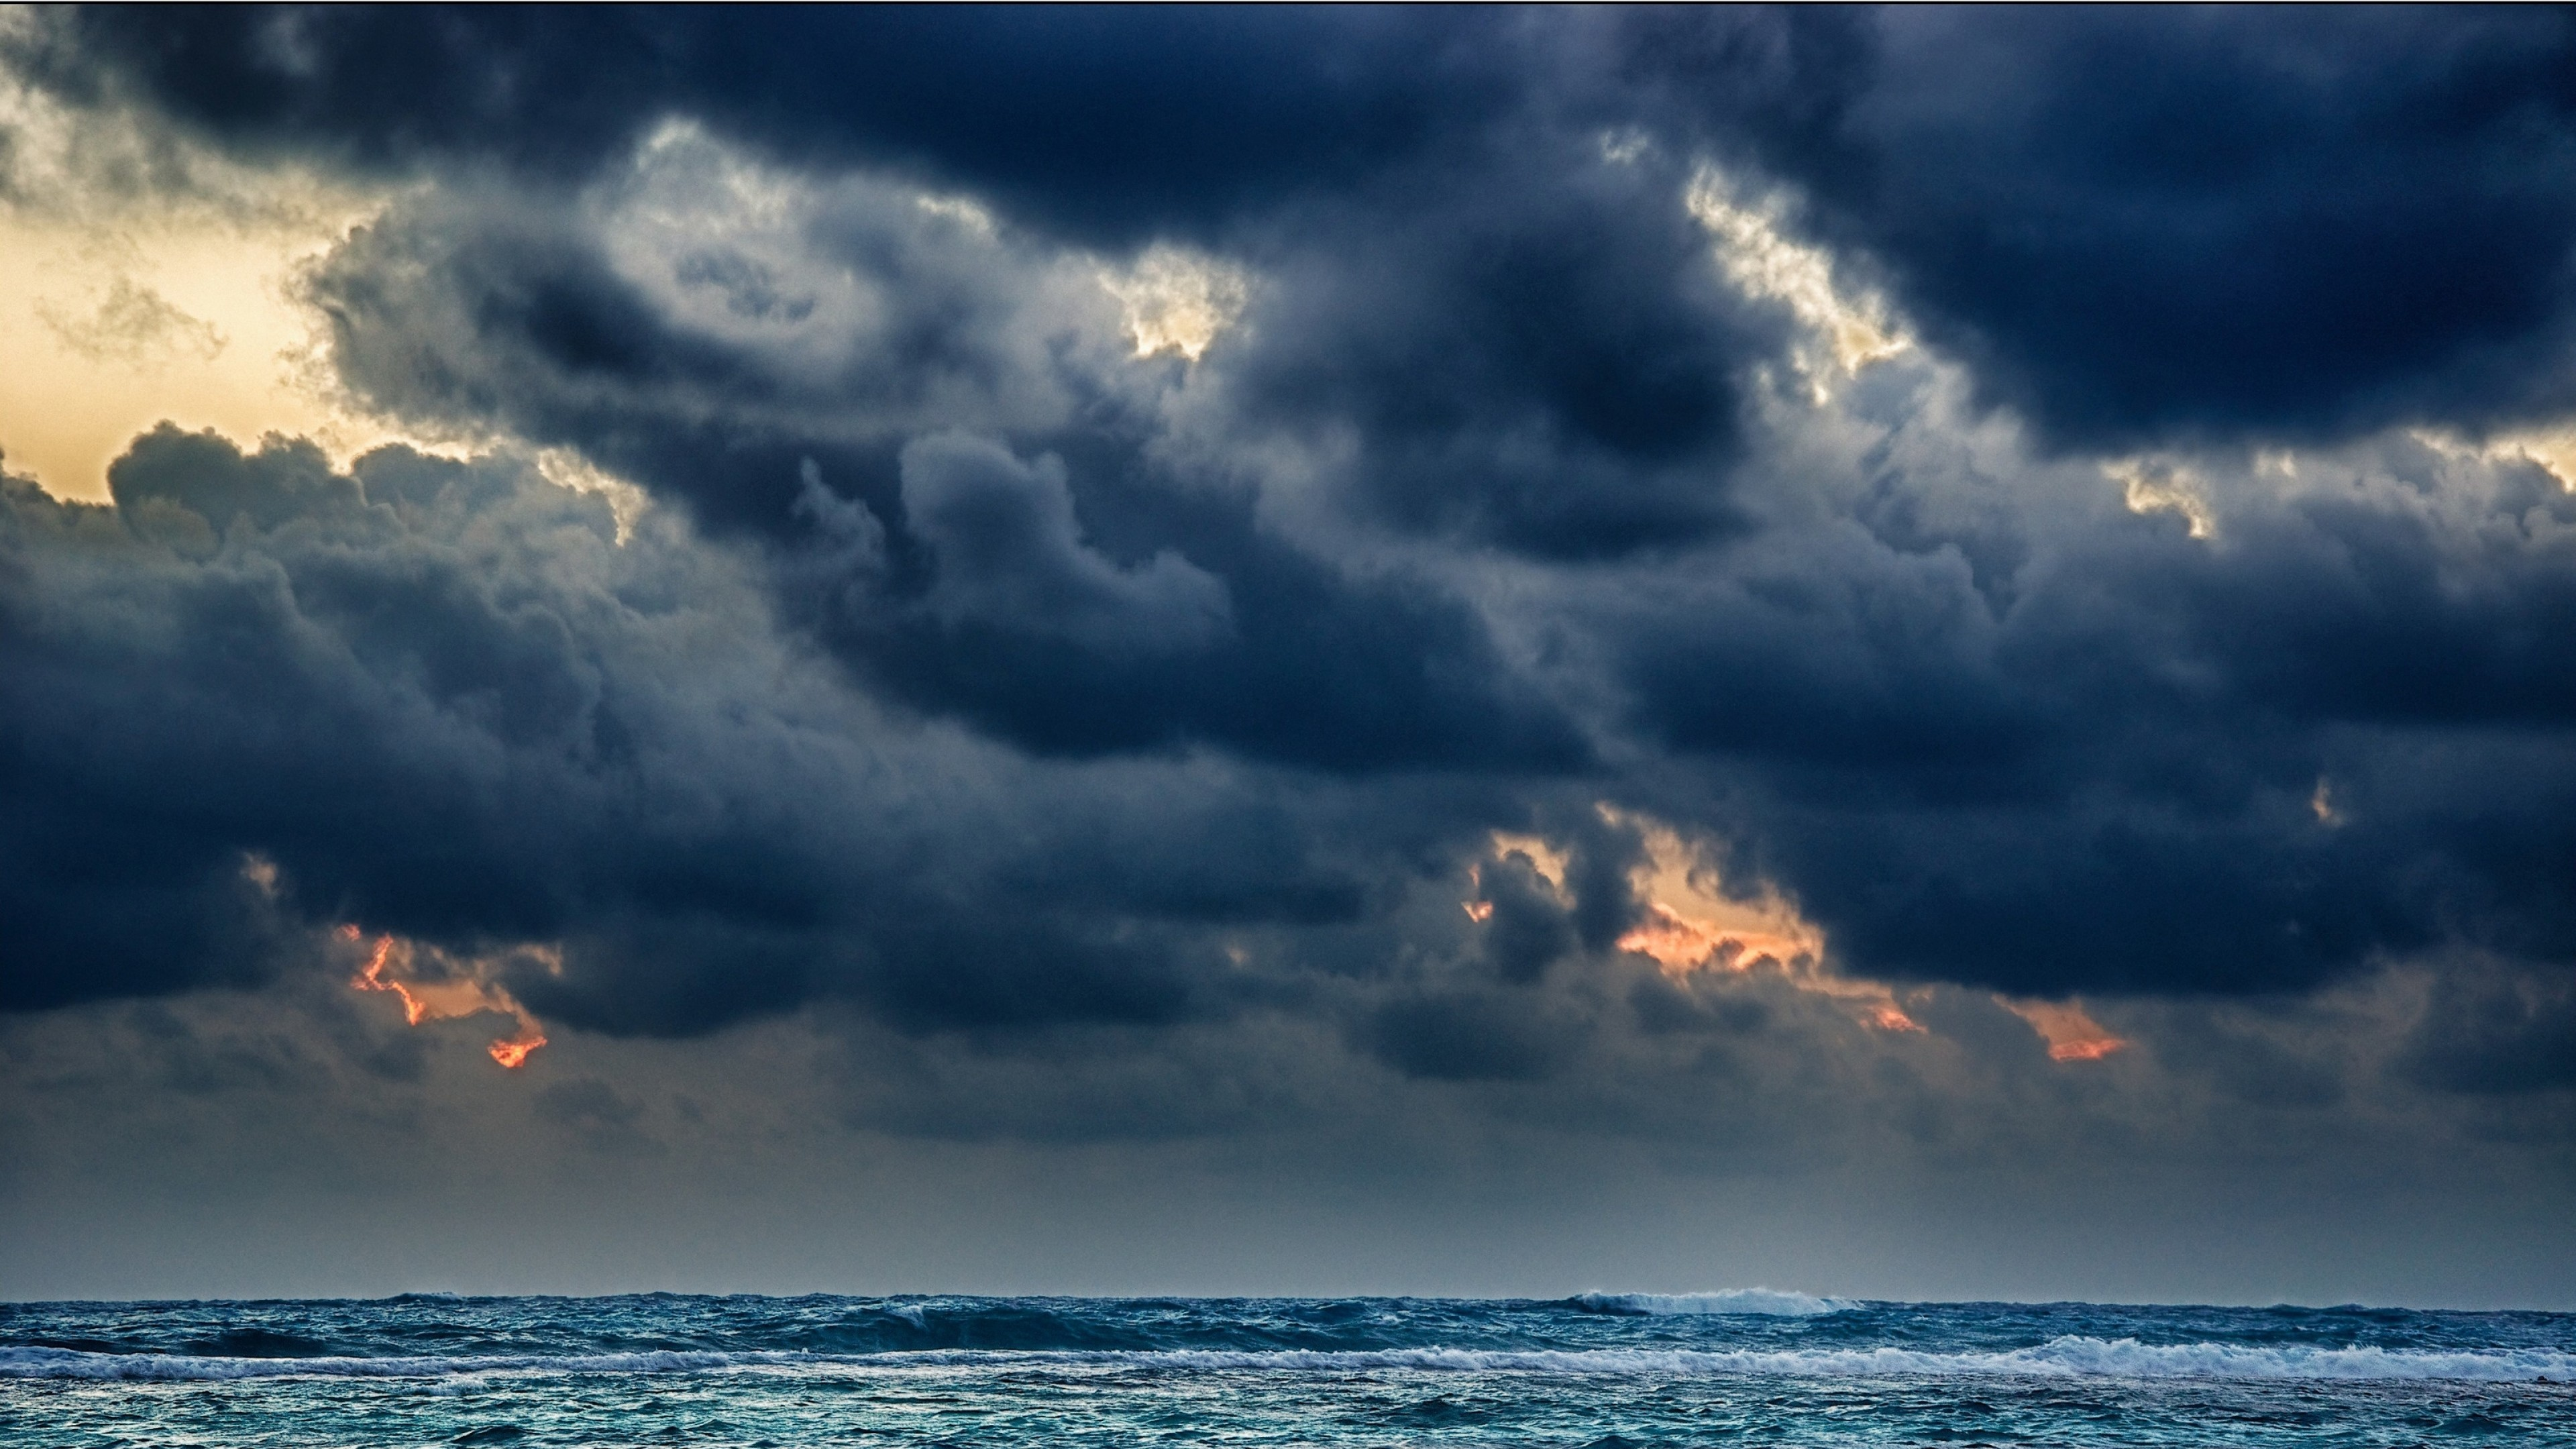 3840x2160 Preview wallpaper clouds, sea, storm, gloomy, heavy, elements